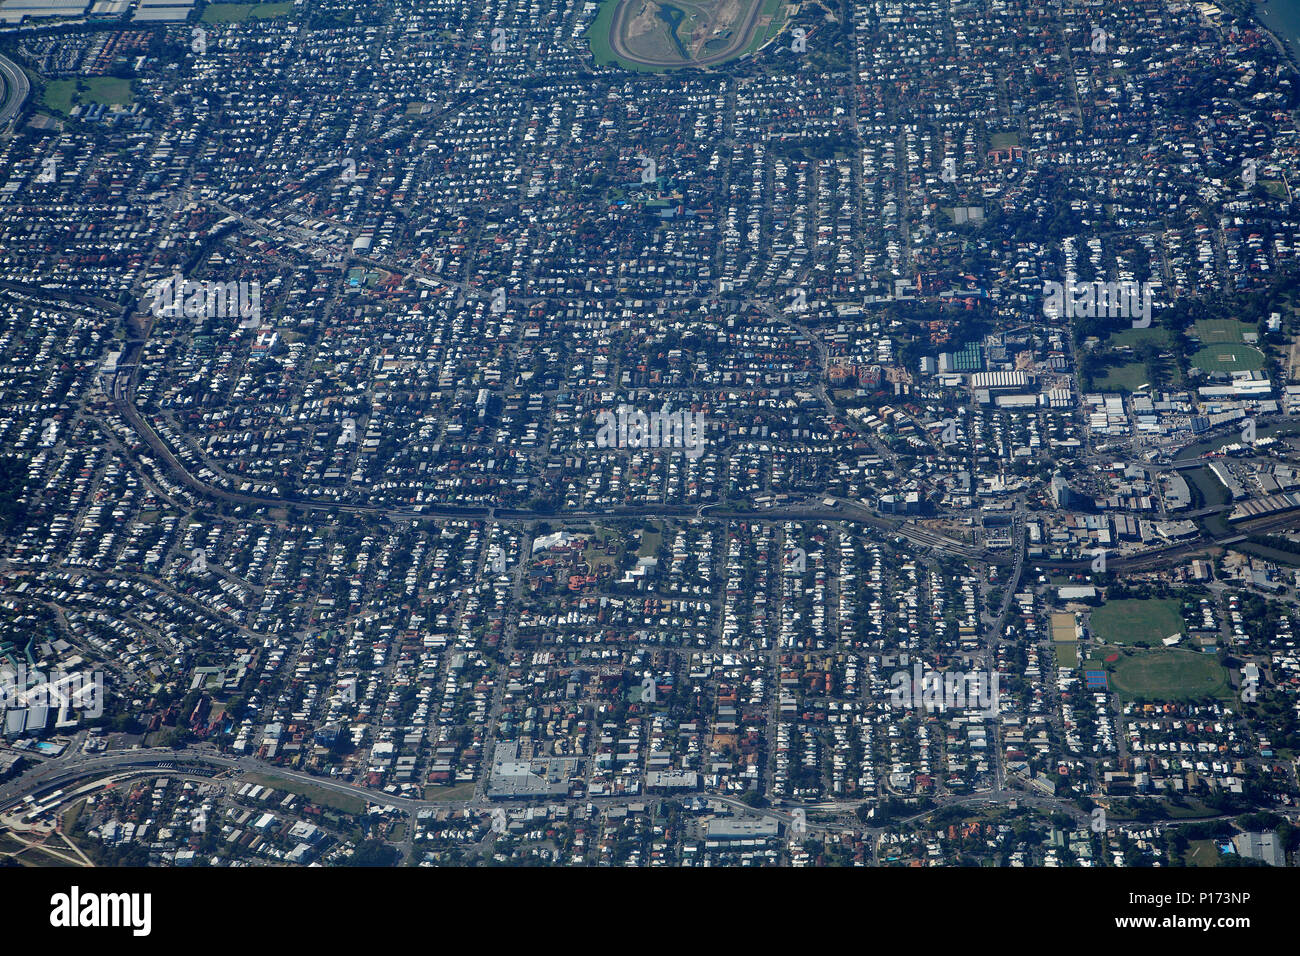 Suburbs of Albion, Ascot, Clayfield, and Hendra, Brisbane, Queensland, Australia - aerial - Stock Image